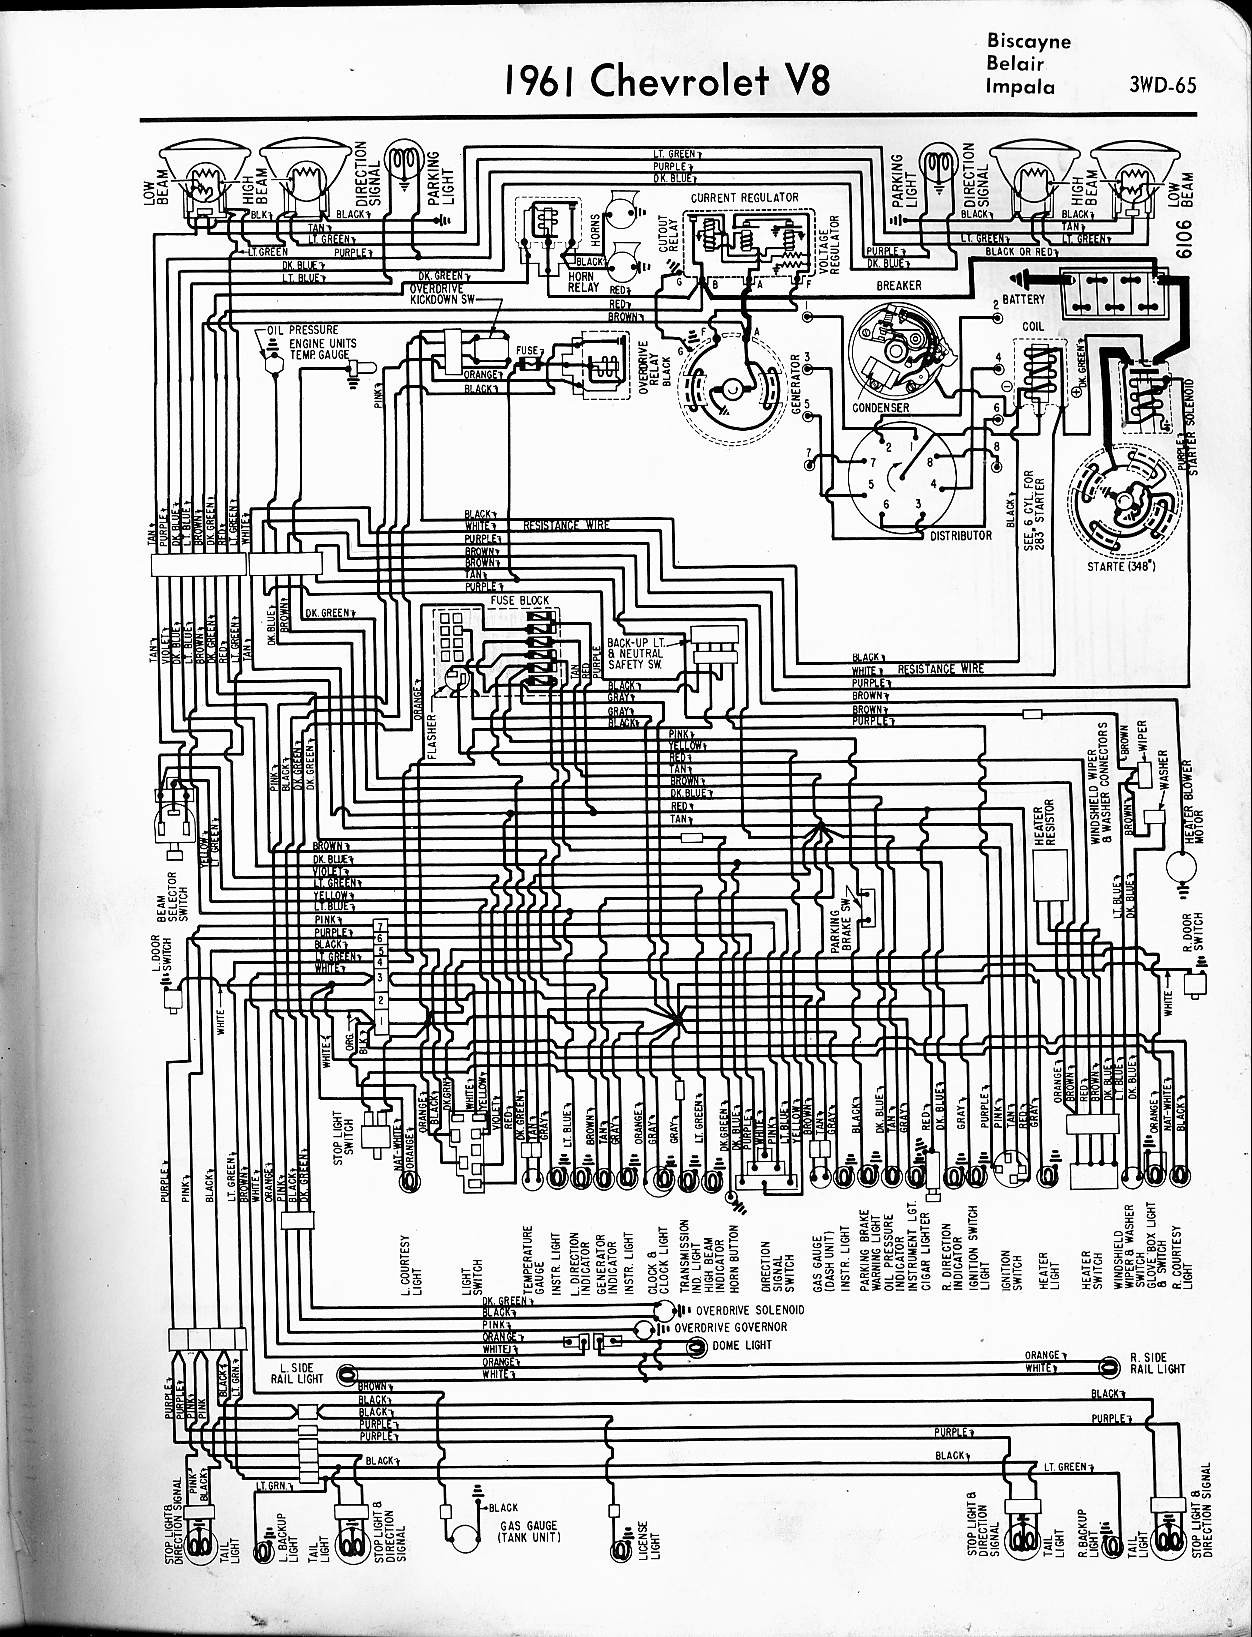 1963 Chevy Truck Wiring Diagram 57 65 Chevy Wiring Diagrams Of 1963 Chevy Truck Wiring Diagram Chevy Wiring Diagrams